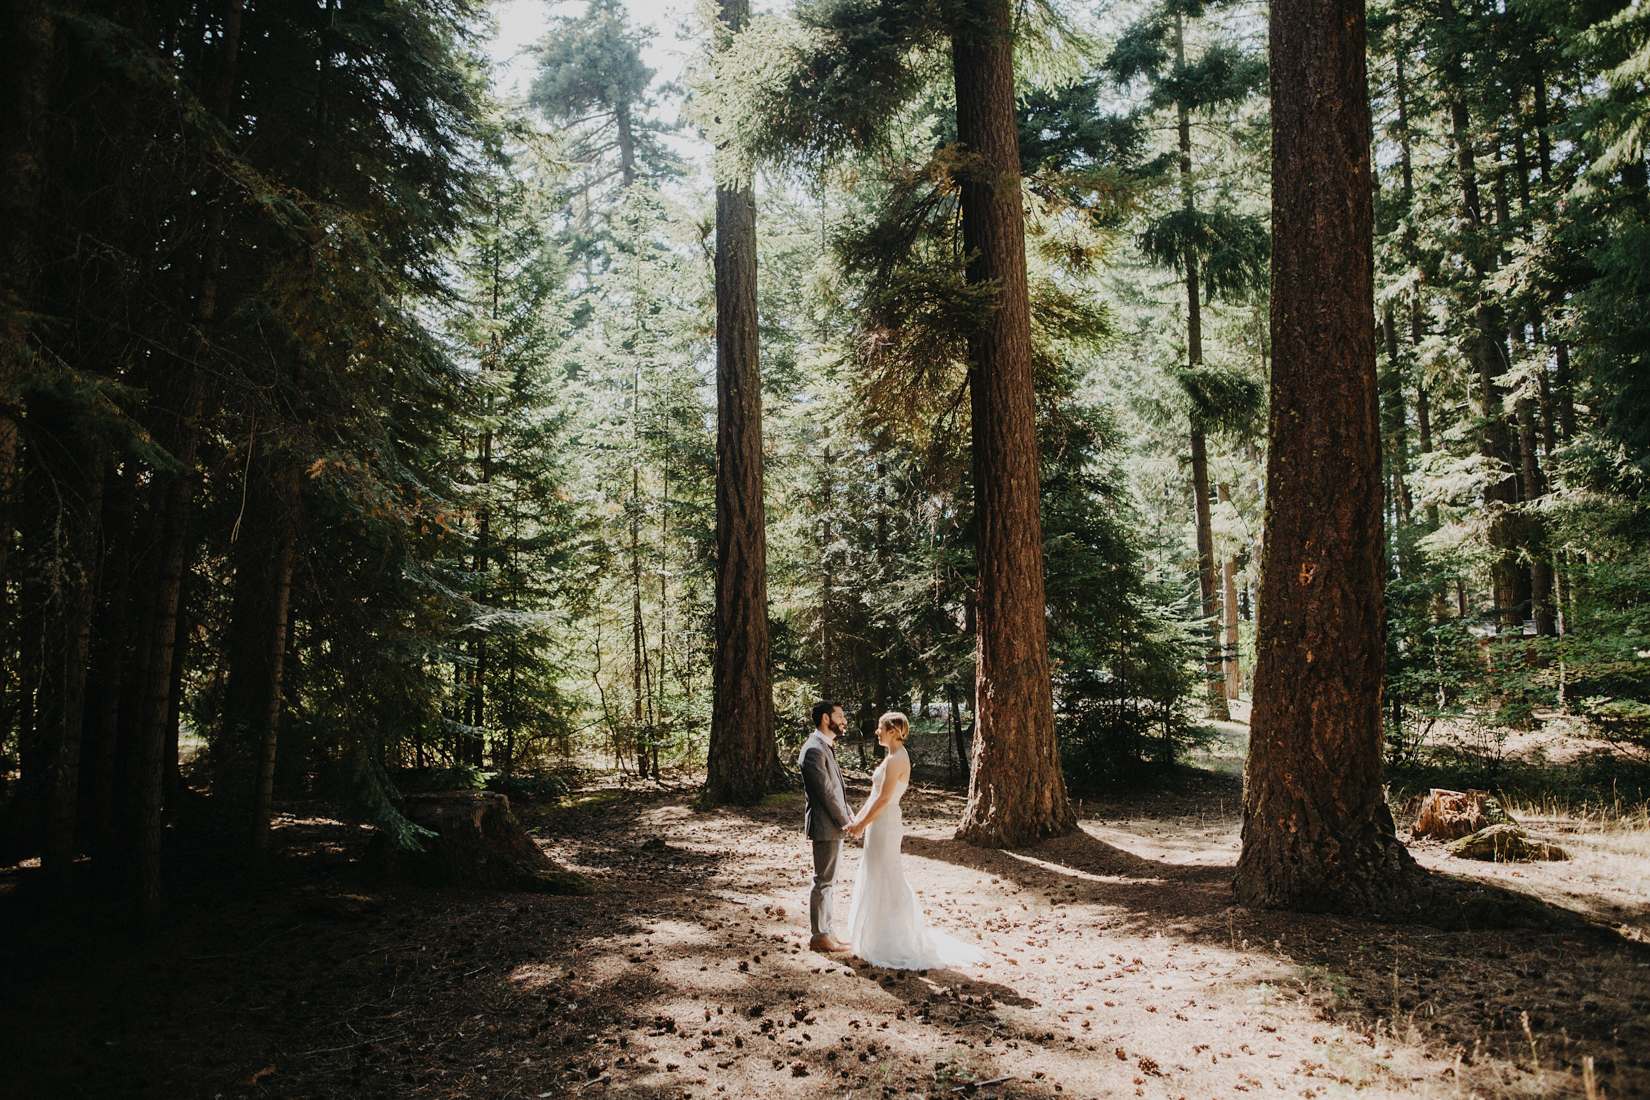 Camping wedding in the woods